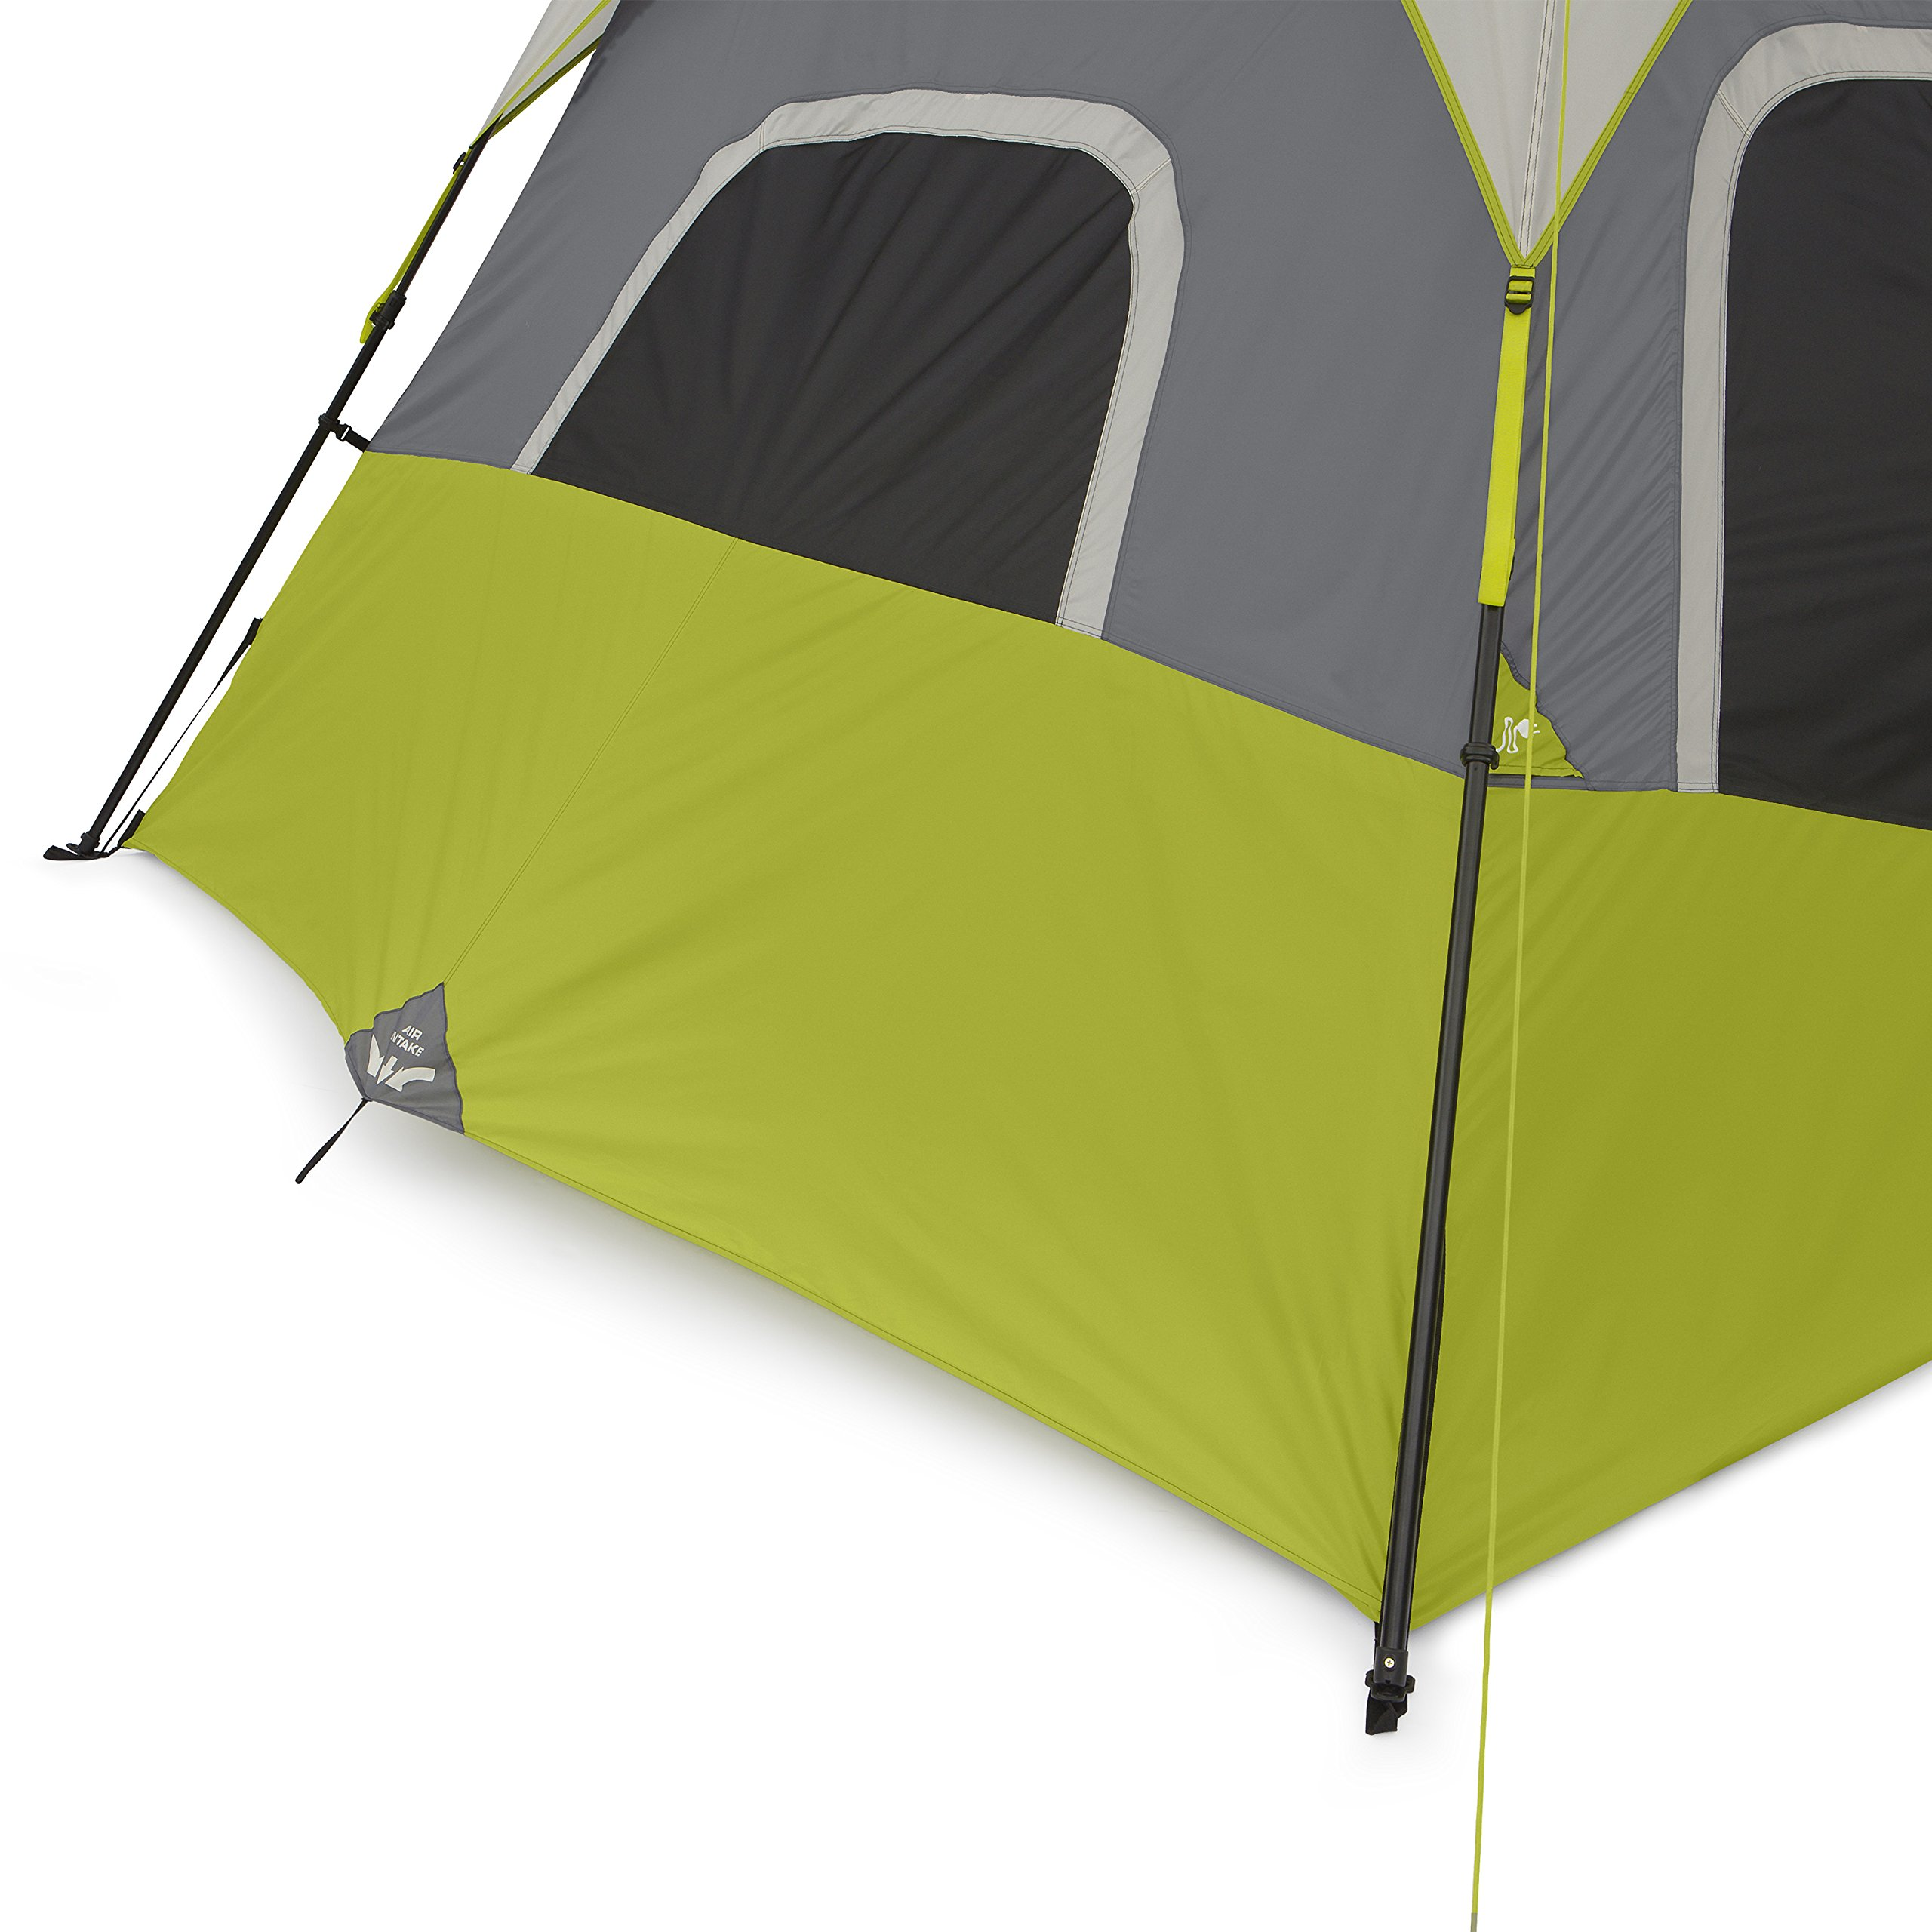 CORE Instant Cabin Tent, 6 Person, 11' x 9' by CORE (Image #7)